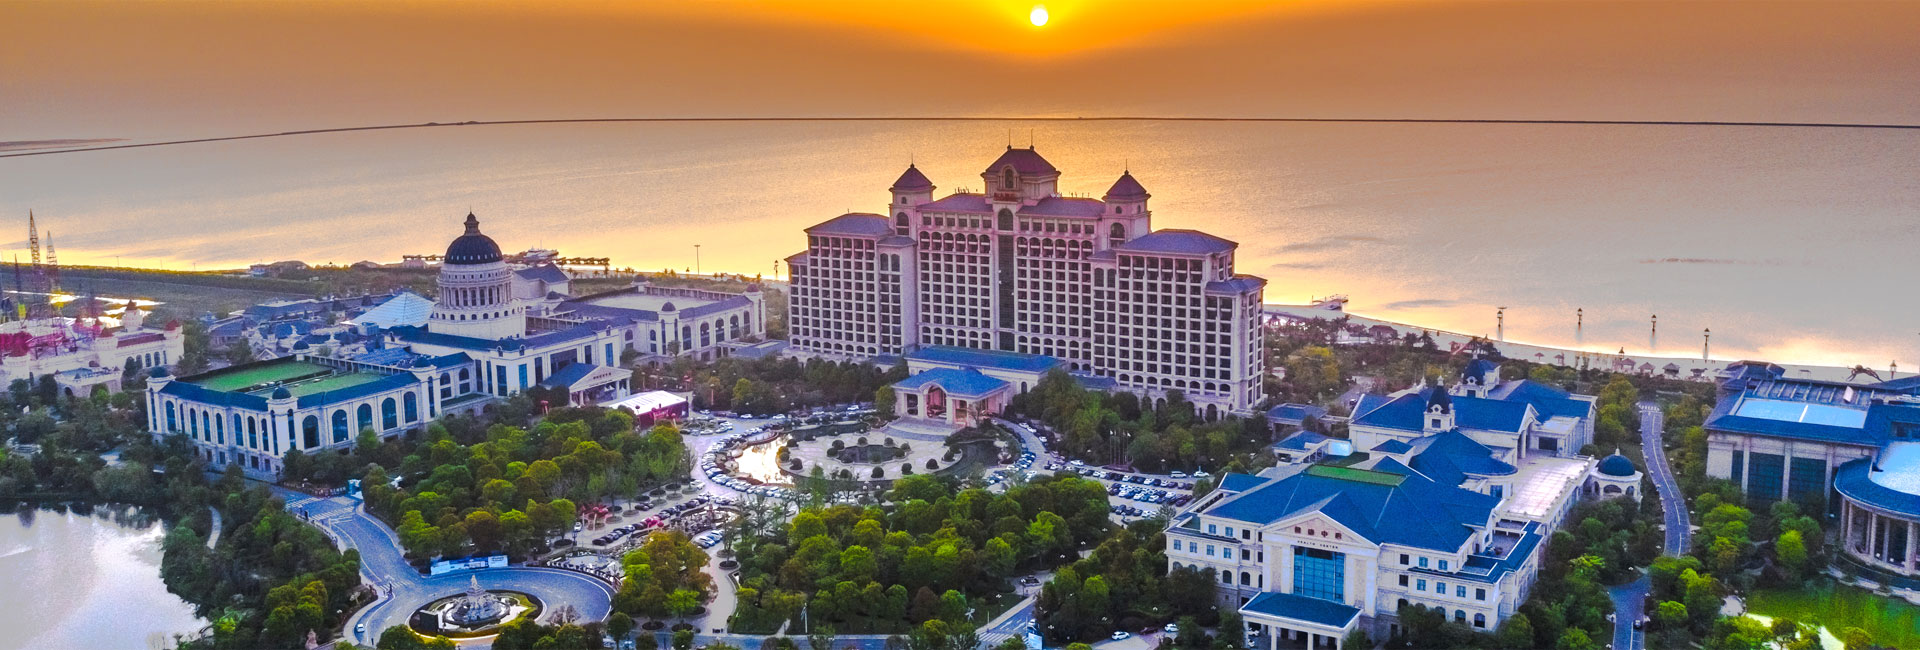 Yuantuojiao Resort